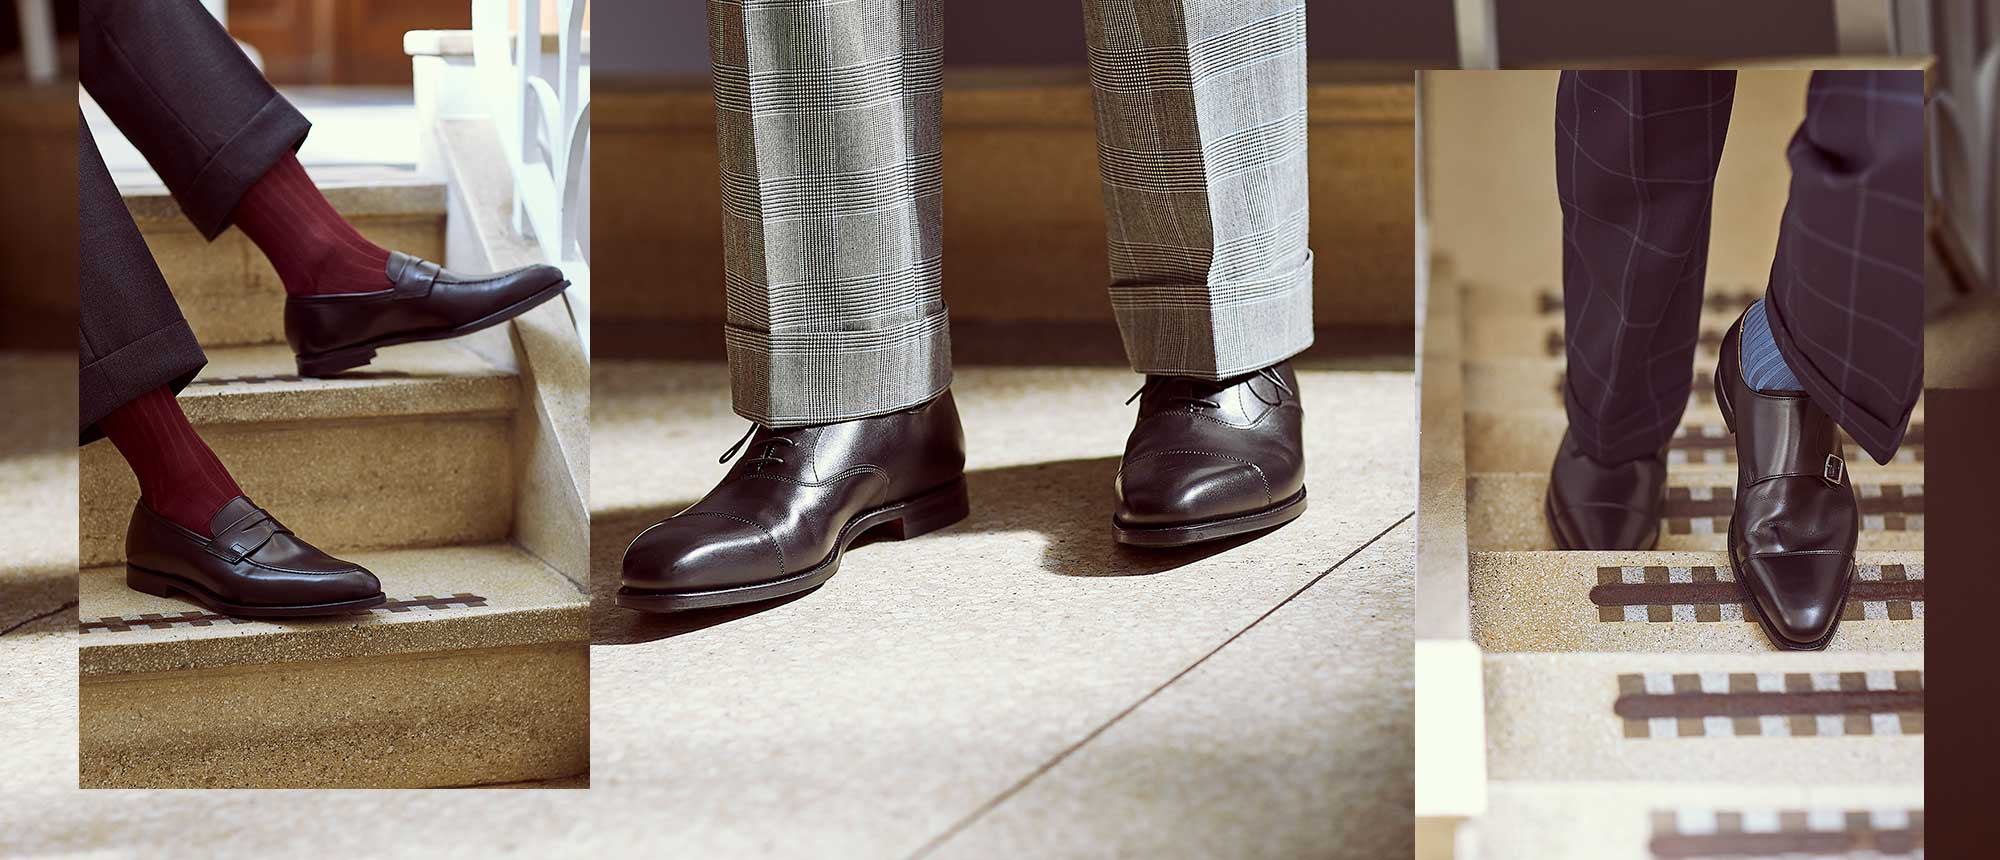 Crockett & Jones - Shoes & Style: Back to Business